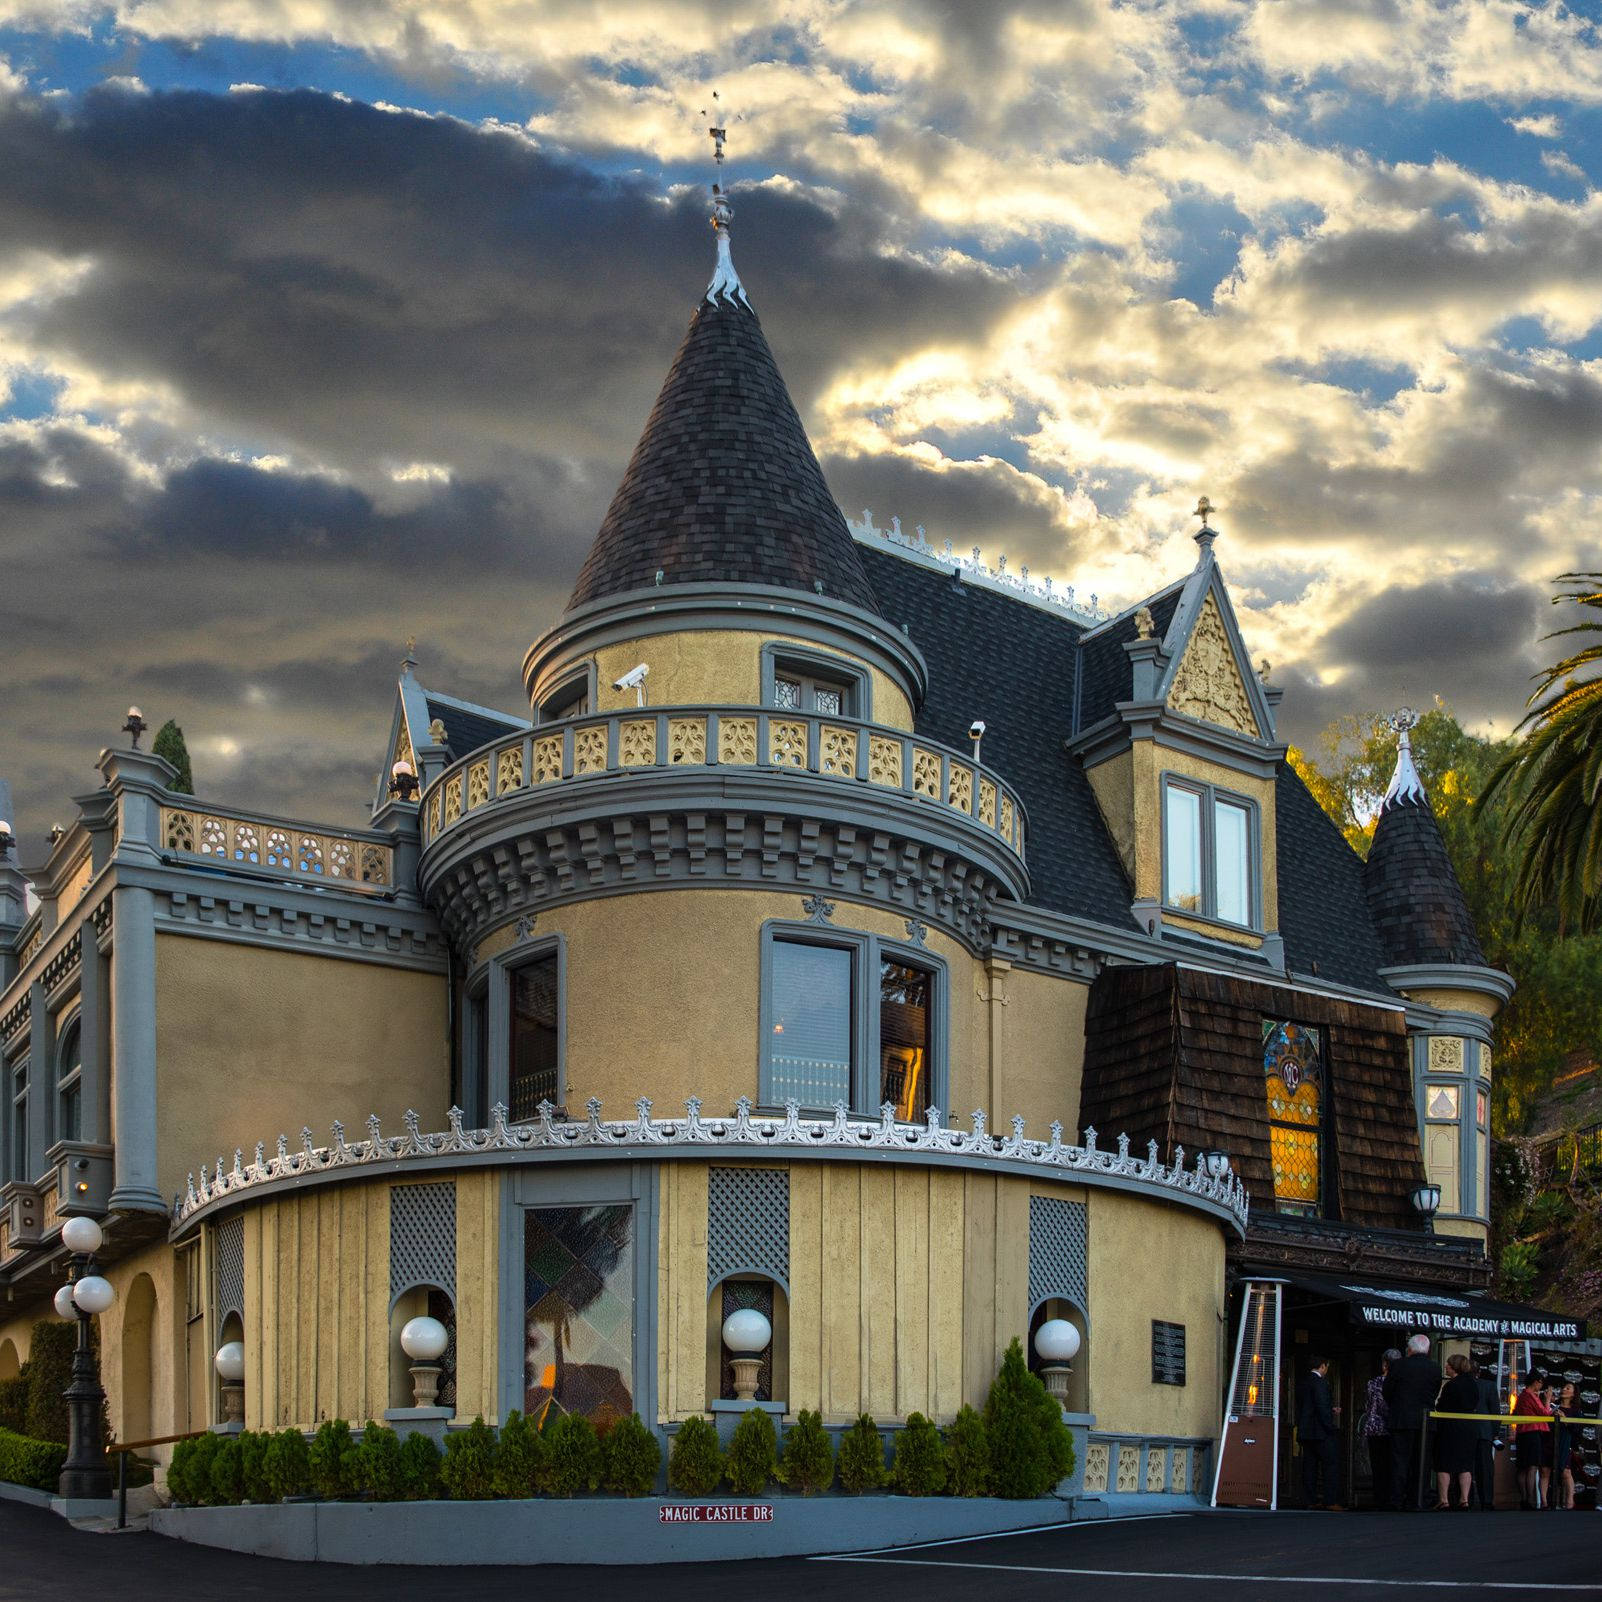 LA's Magic Castle: The Complete Guide to the Members-Only Mansion